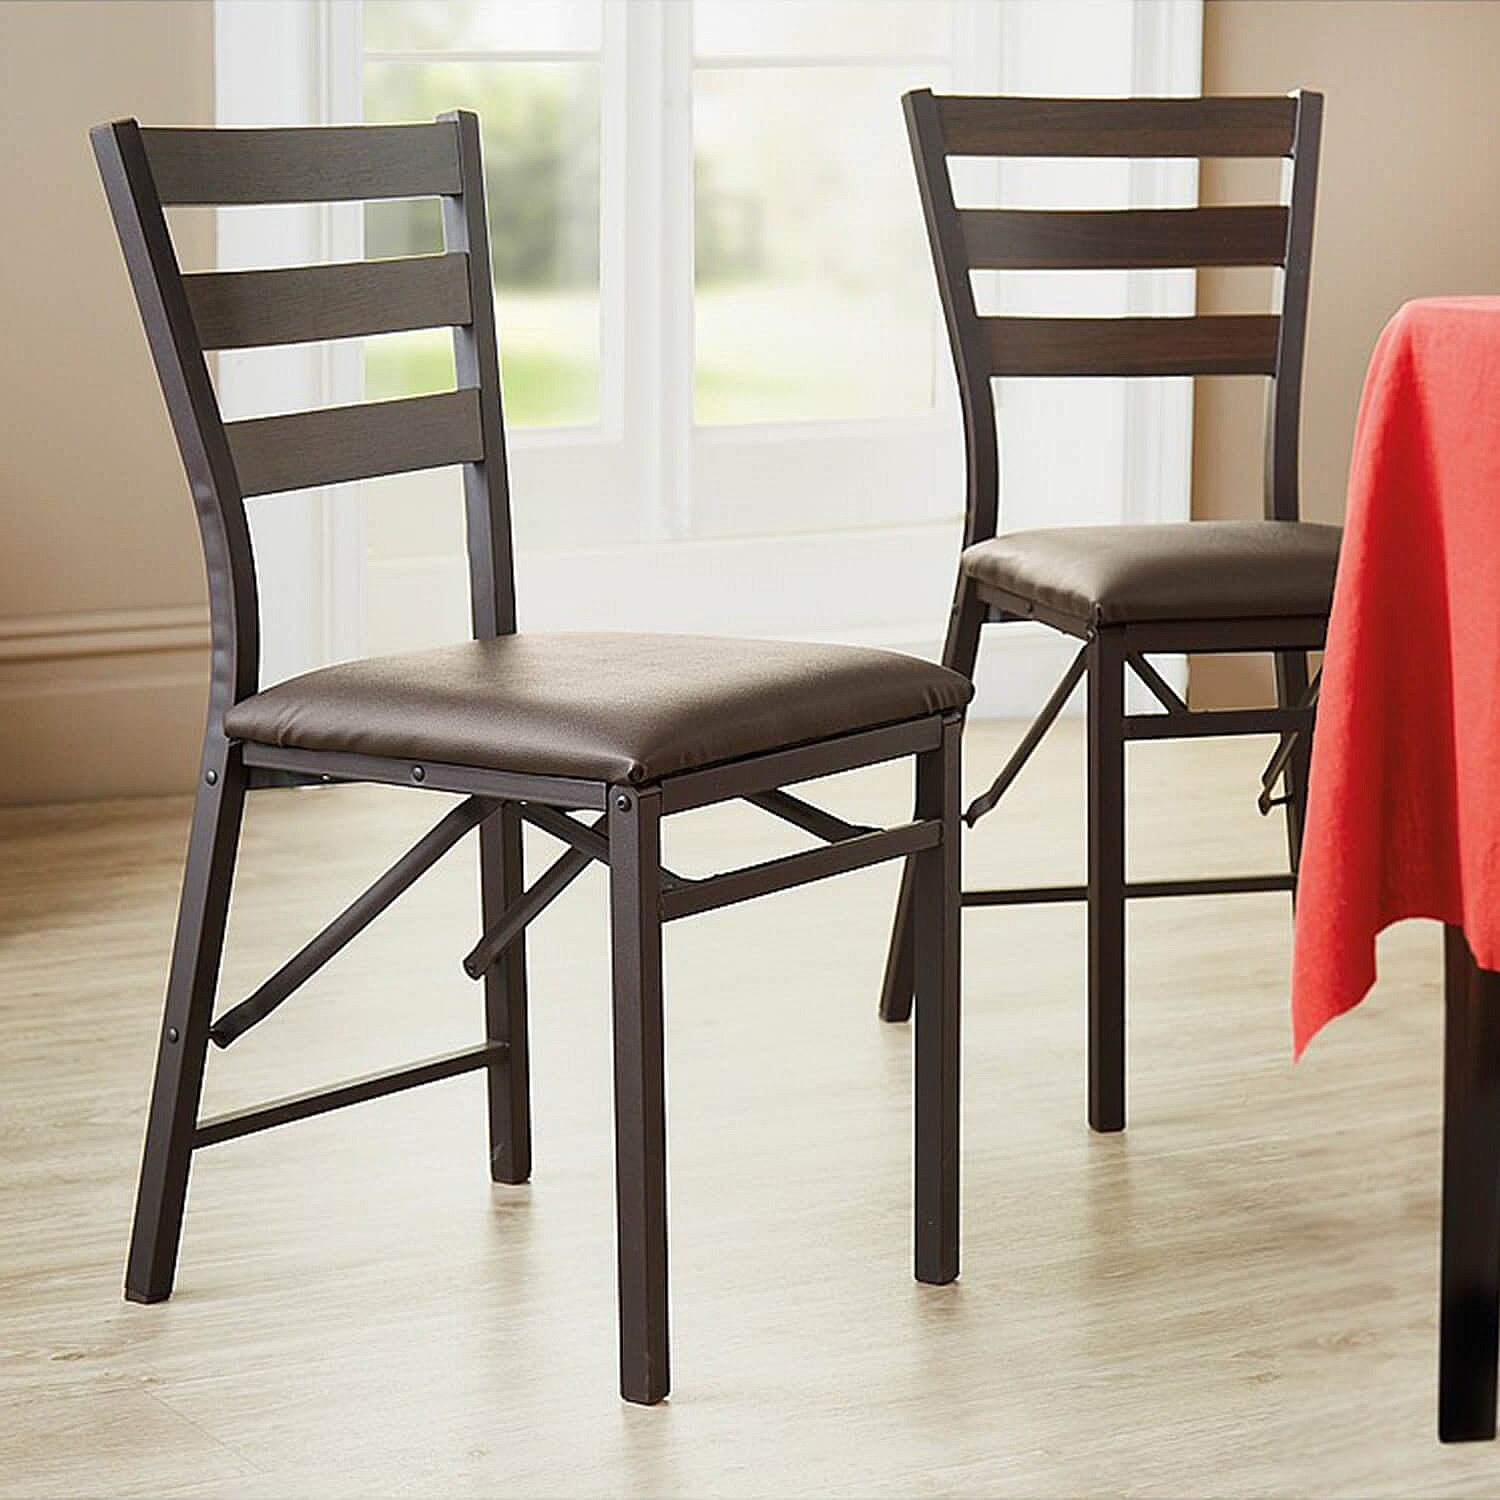 Folding Dining Chairs Padded.Folding Dining Chairs Set Of 2